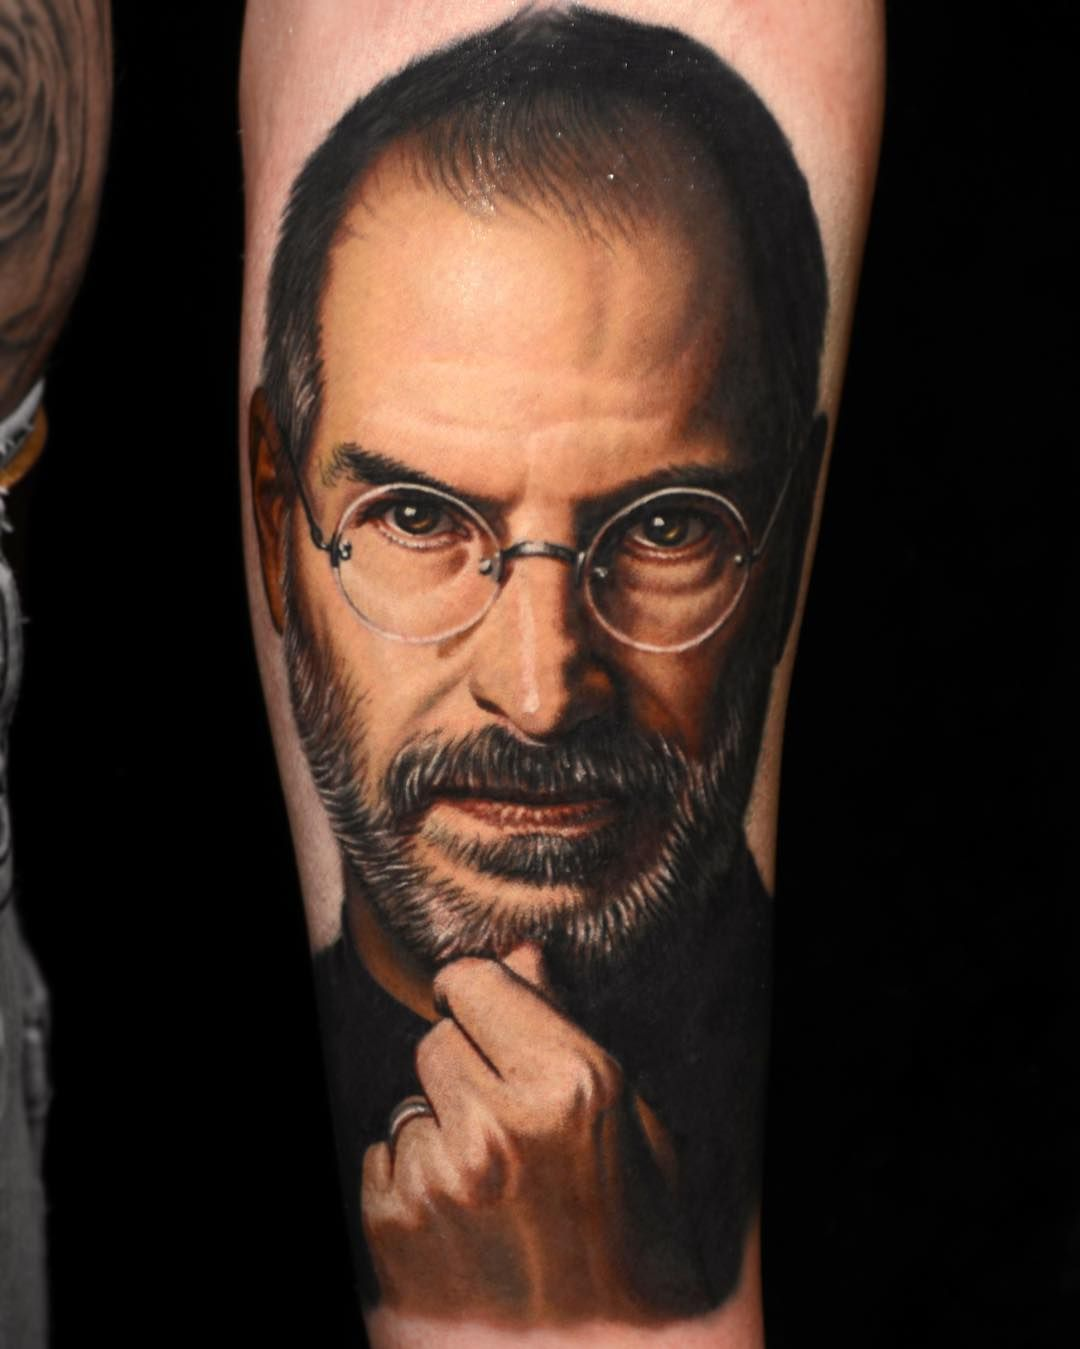 Best Tattoo Artists - 12 Tattoo Artists to Follow on Instagram